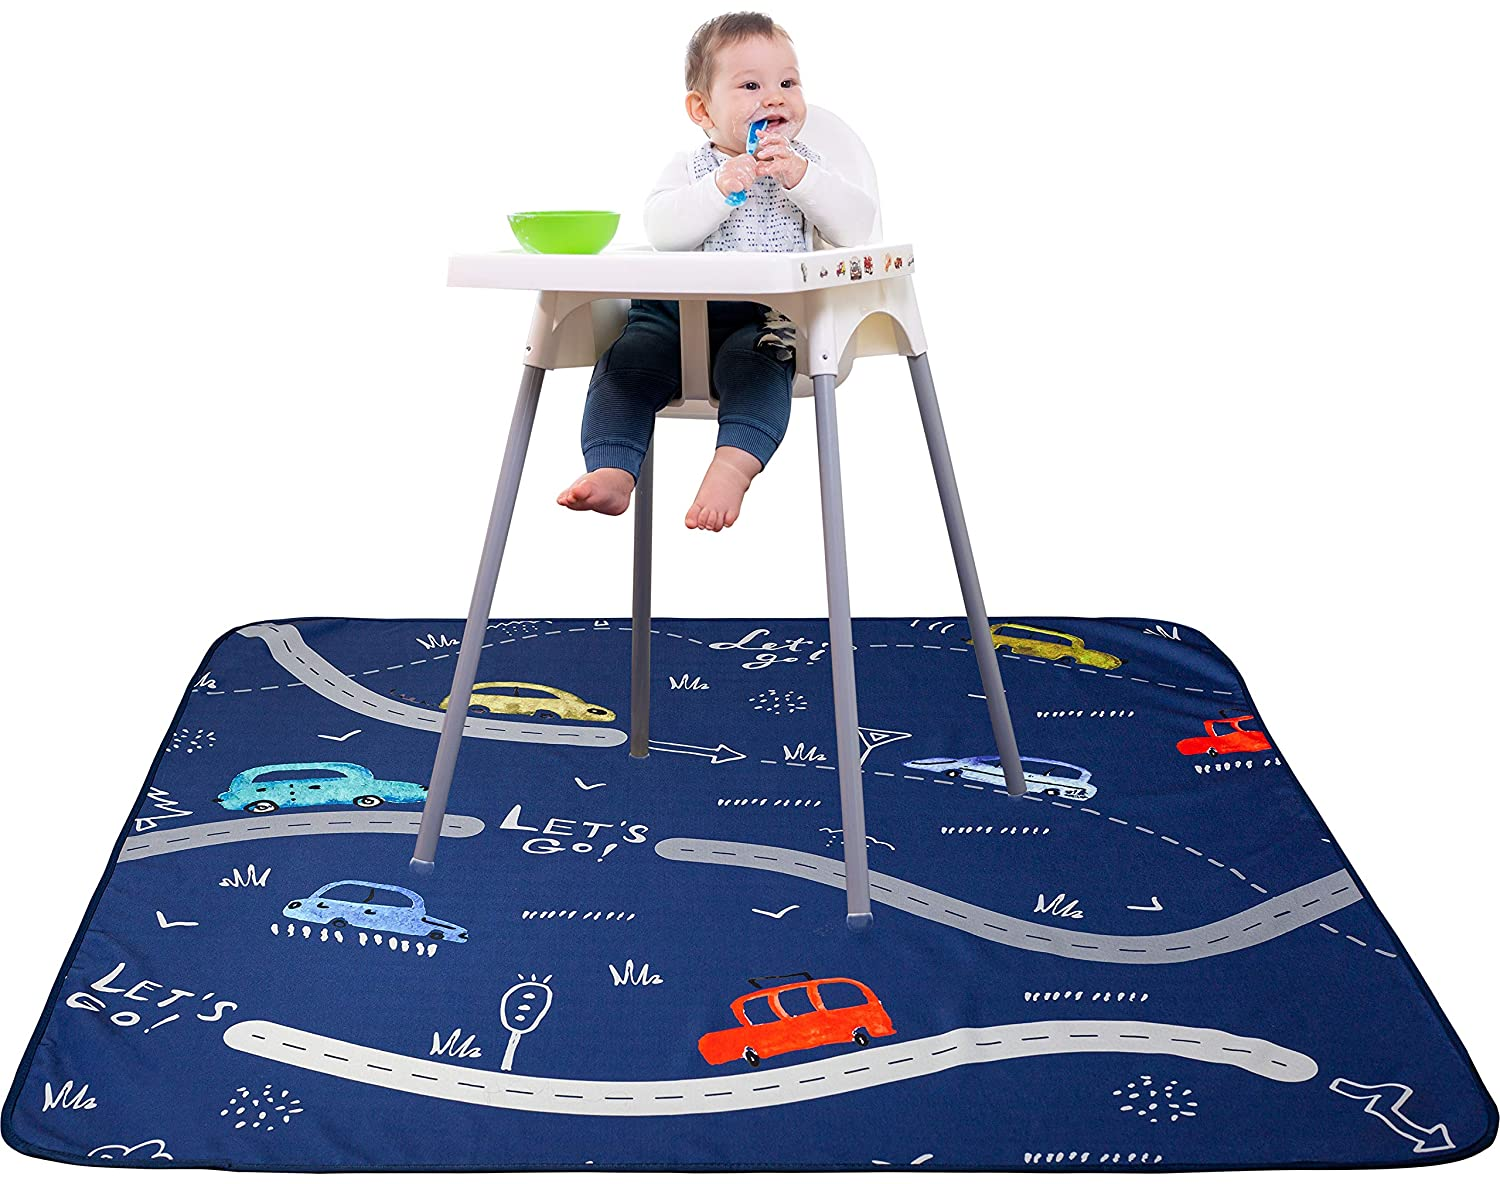 Waterproof Splat Mat for Under High Chair - 51